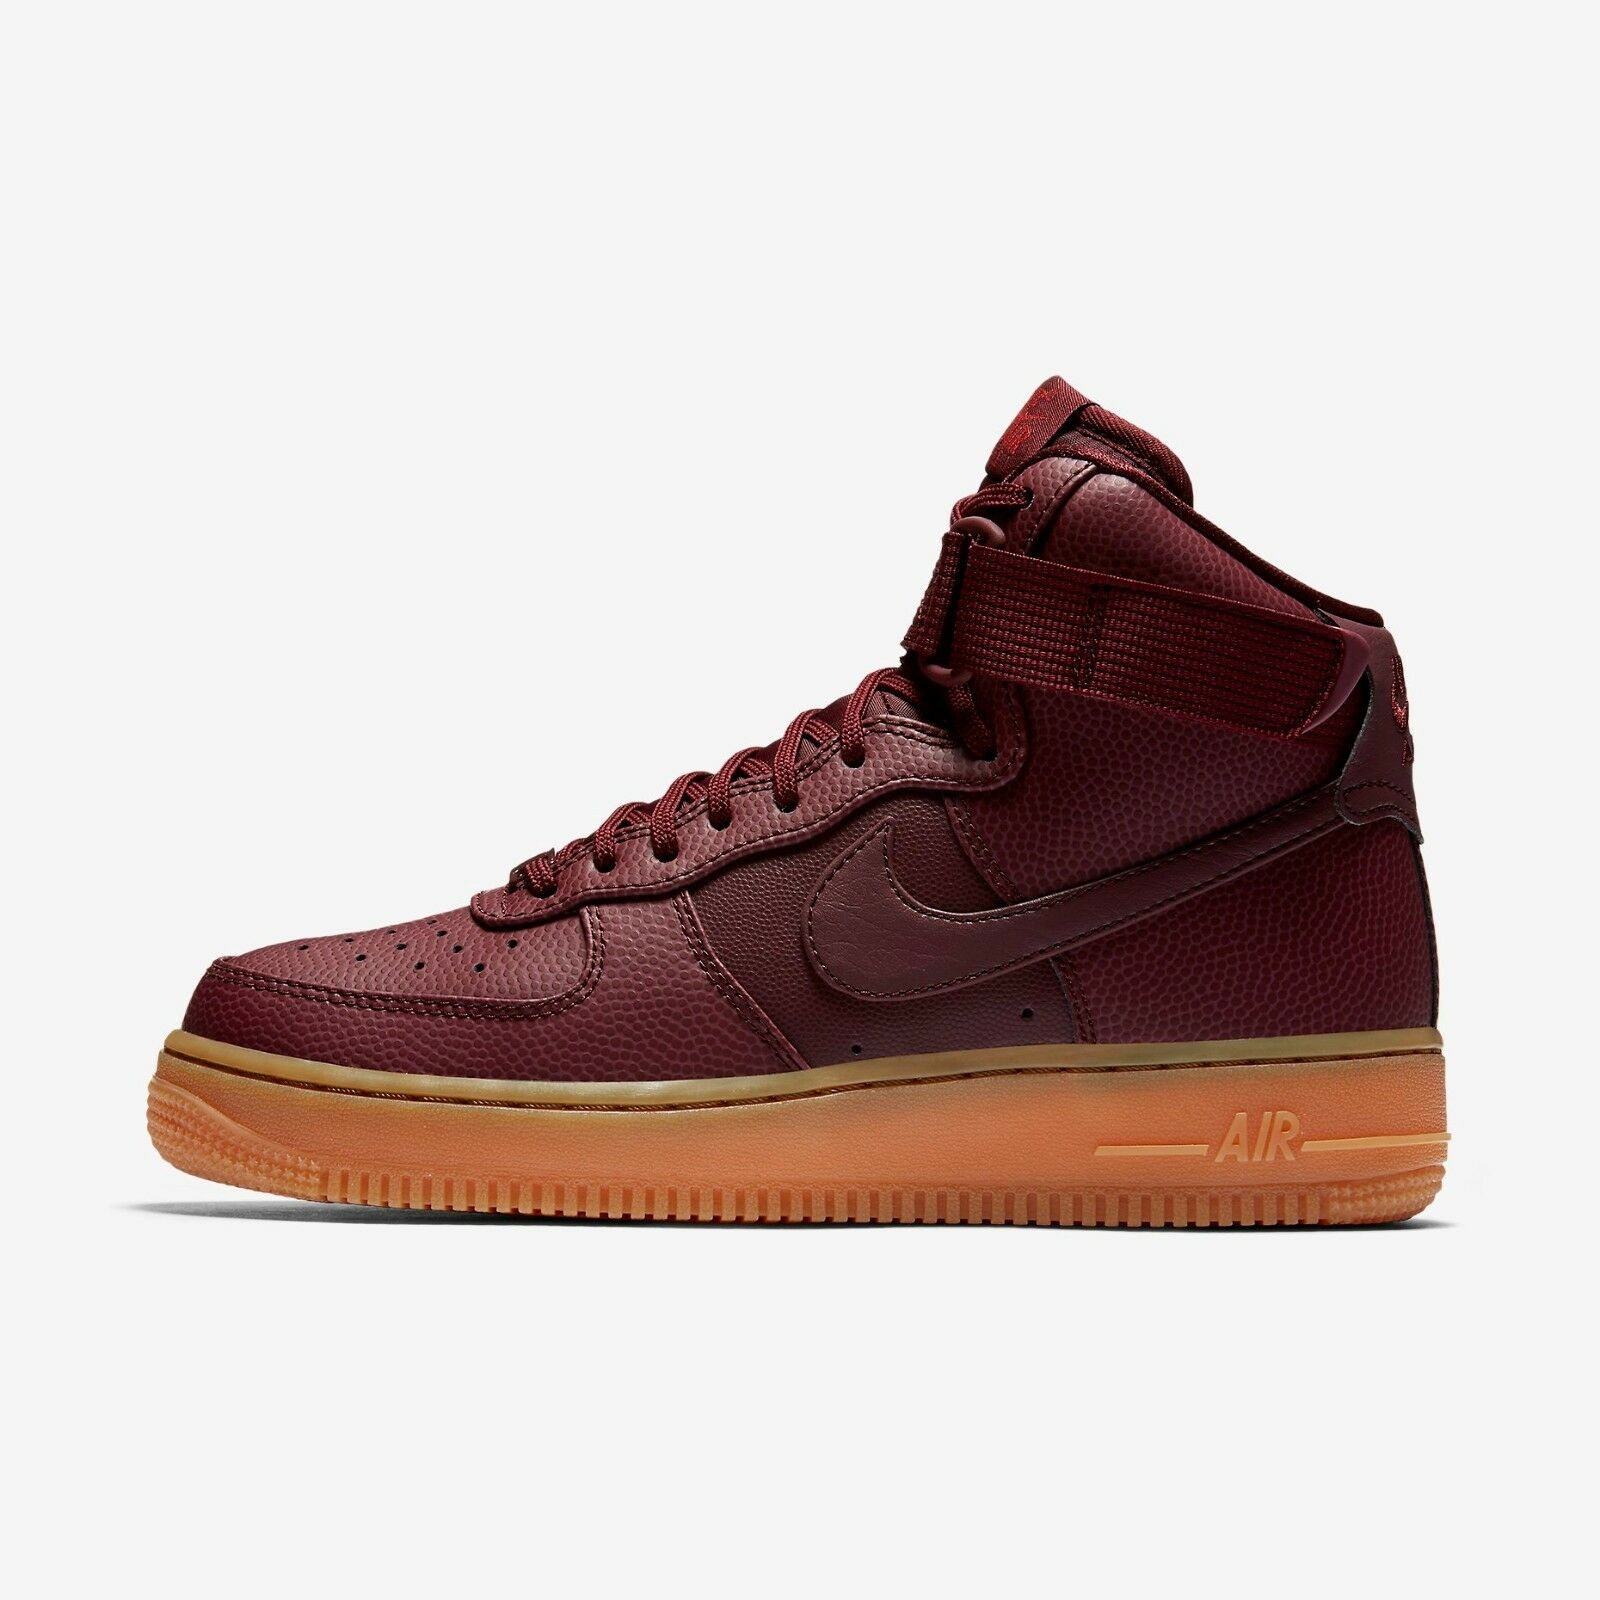 New Nike Women's Air Force 1 High SE Shoes (860544-600)  Night Maroon